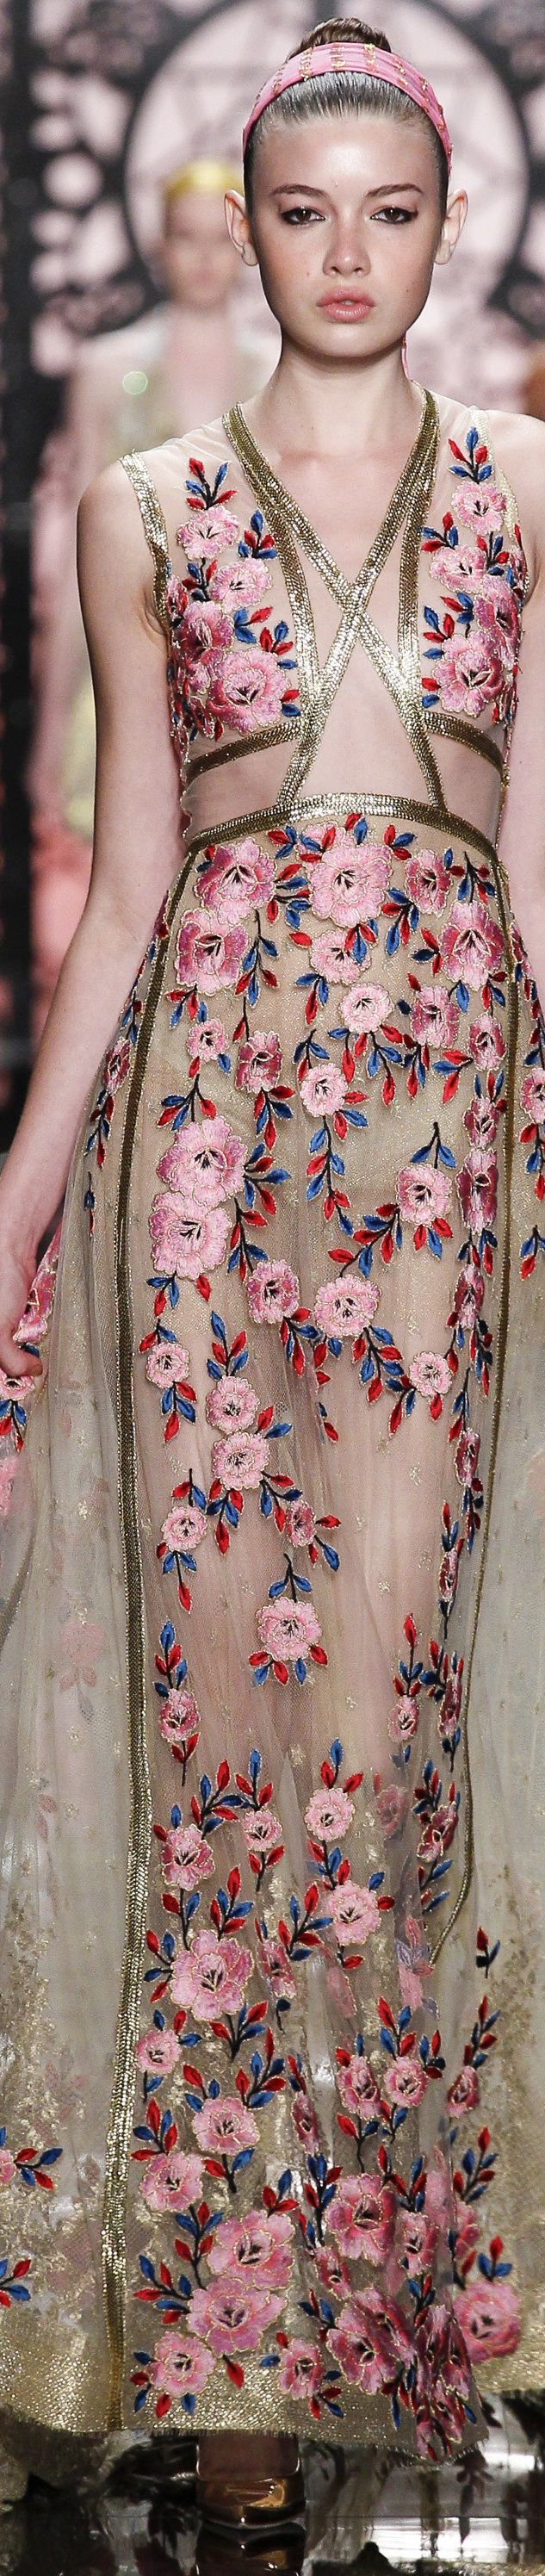 Reem Acra Spring 2016 RTW .... loving the texture and print on this dress.